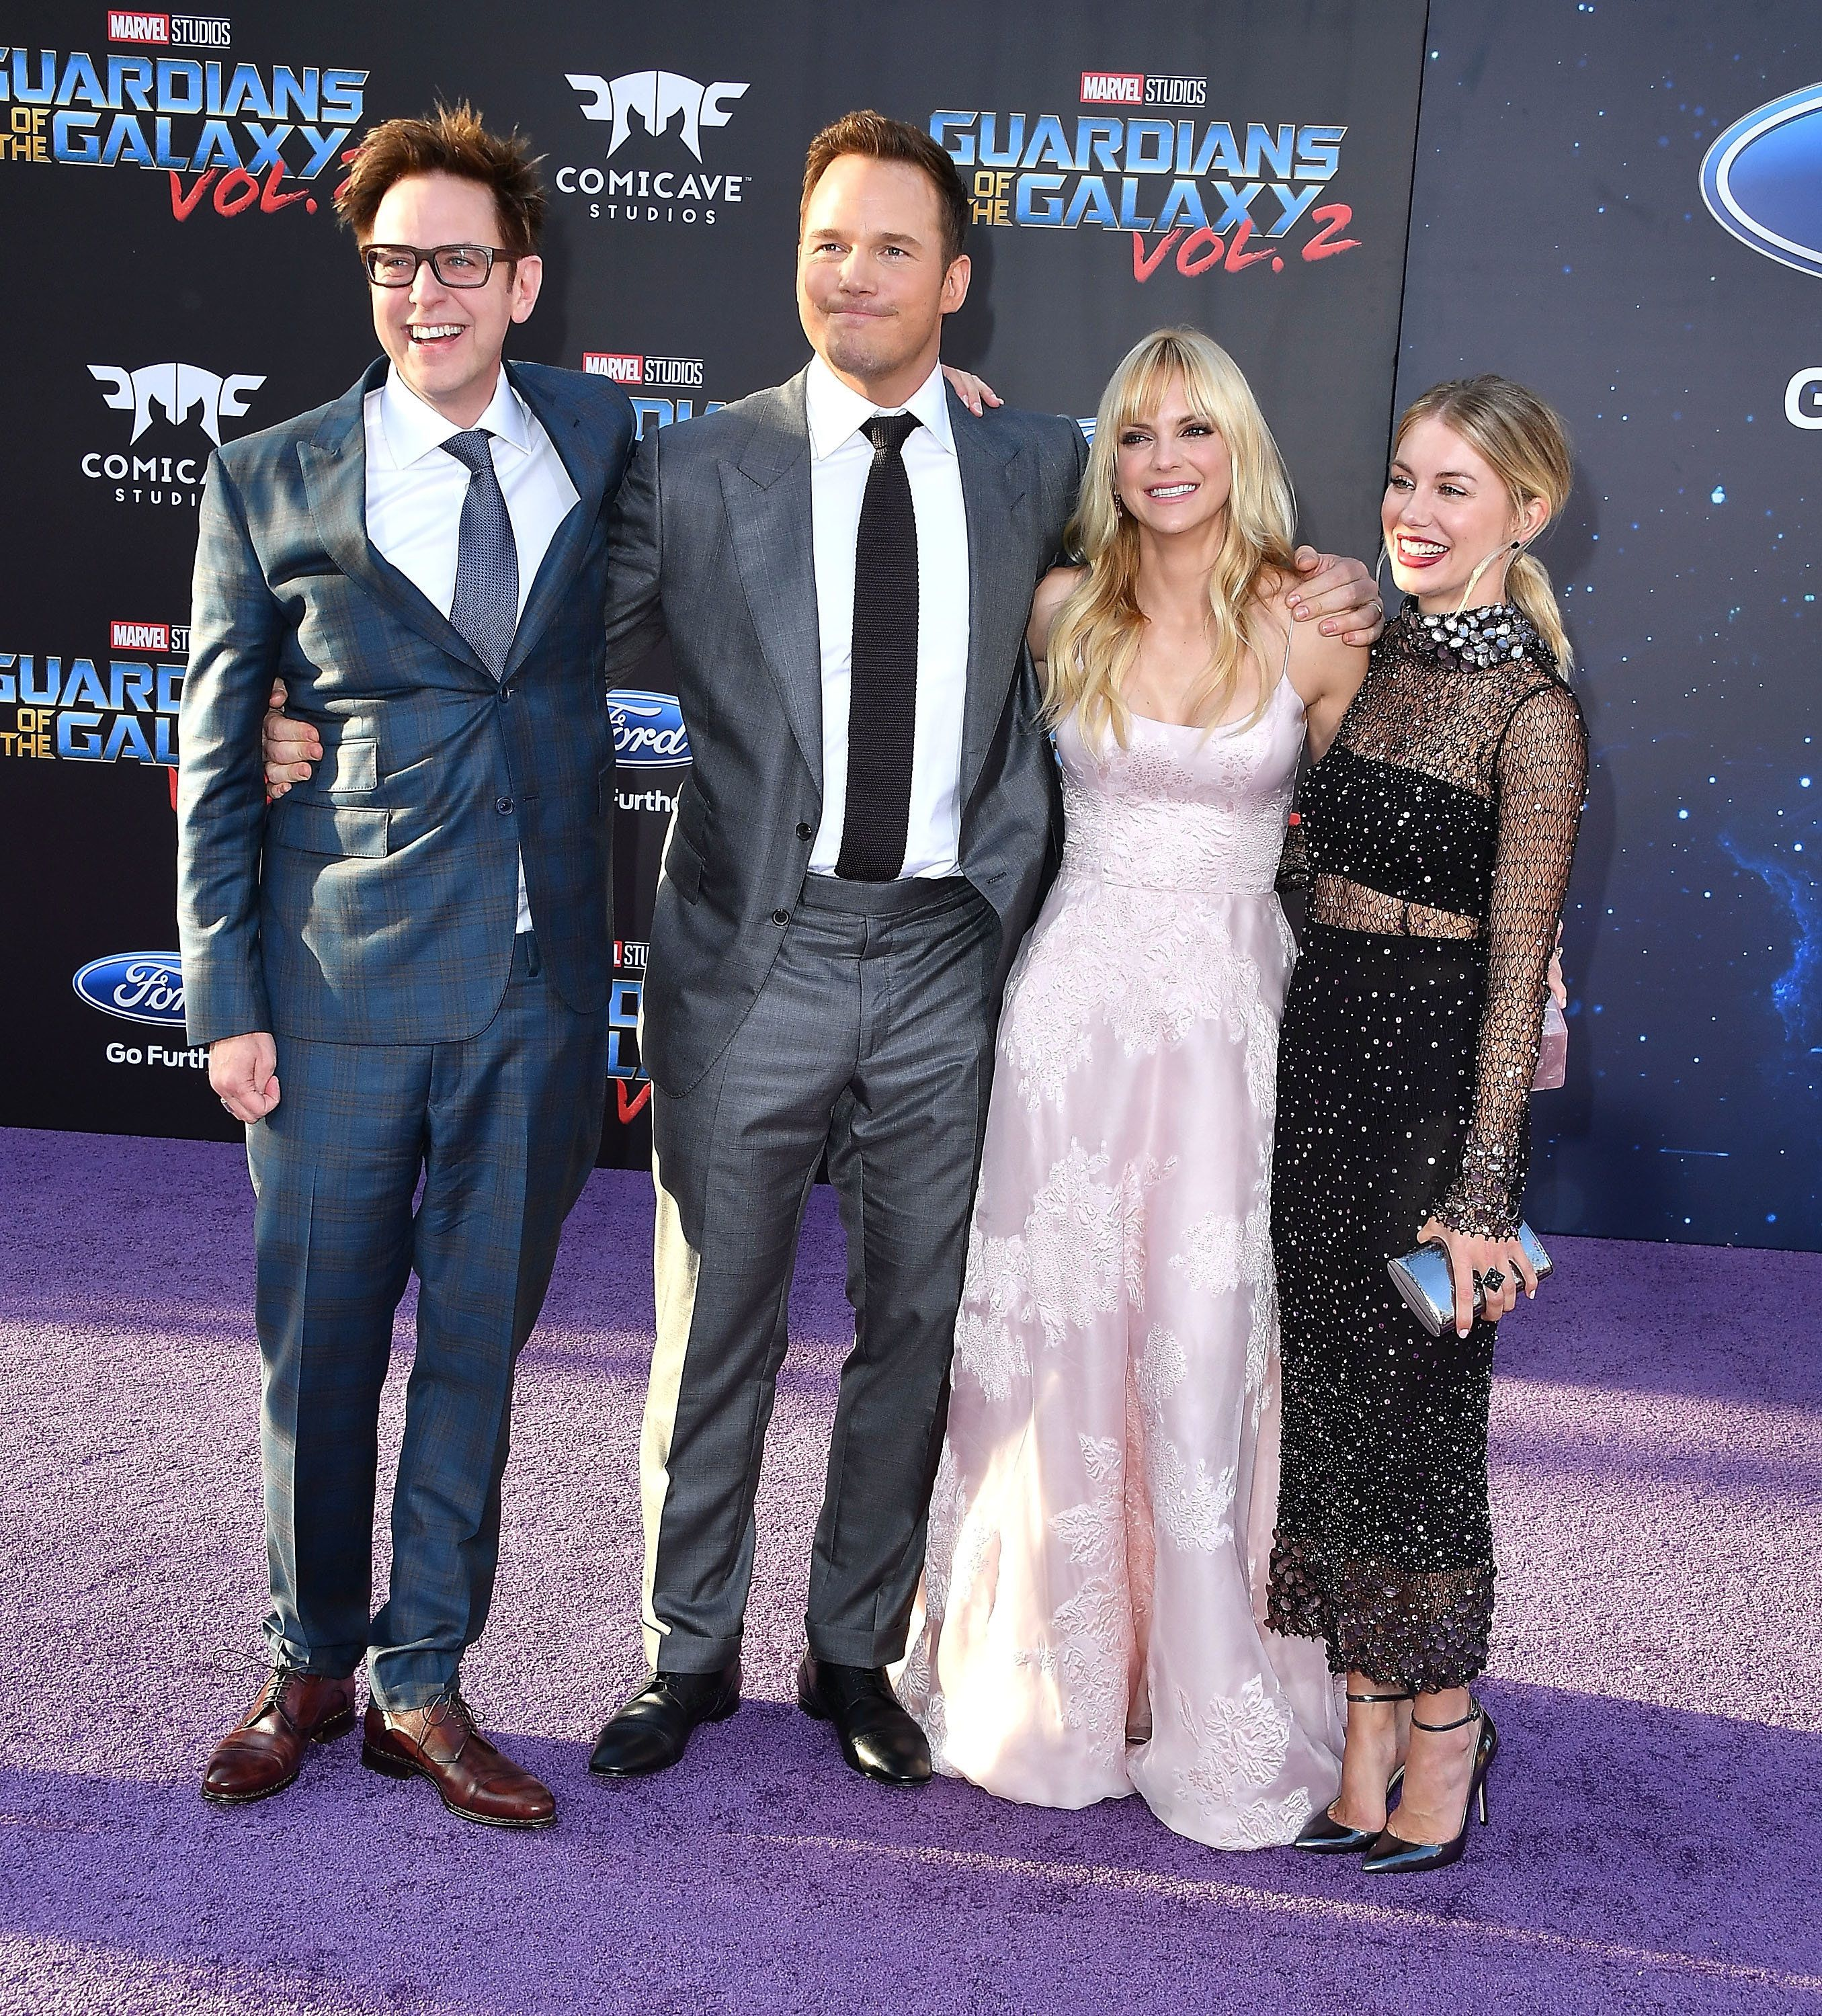 HOLLYWOOD, CA - APRIL 19:  James Gunn;Chris Pratt, Anna Faris;Jennifer Holland arrives at the Premiere Of Disney And Marvel's 'Guardians Of The Galaxy Vol. 2' at Dolby Theatre on April 19, 2017 in Hollywood, California.  (Photo by Steve Granitz/WireImage)